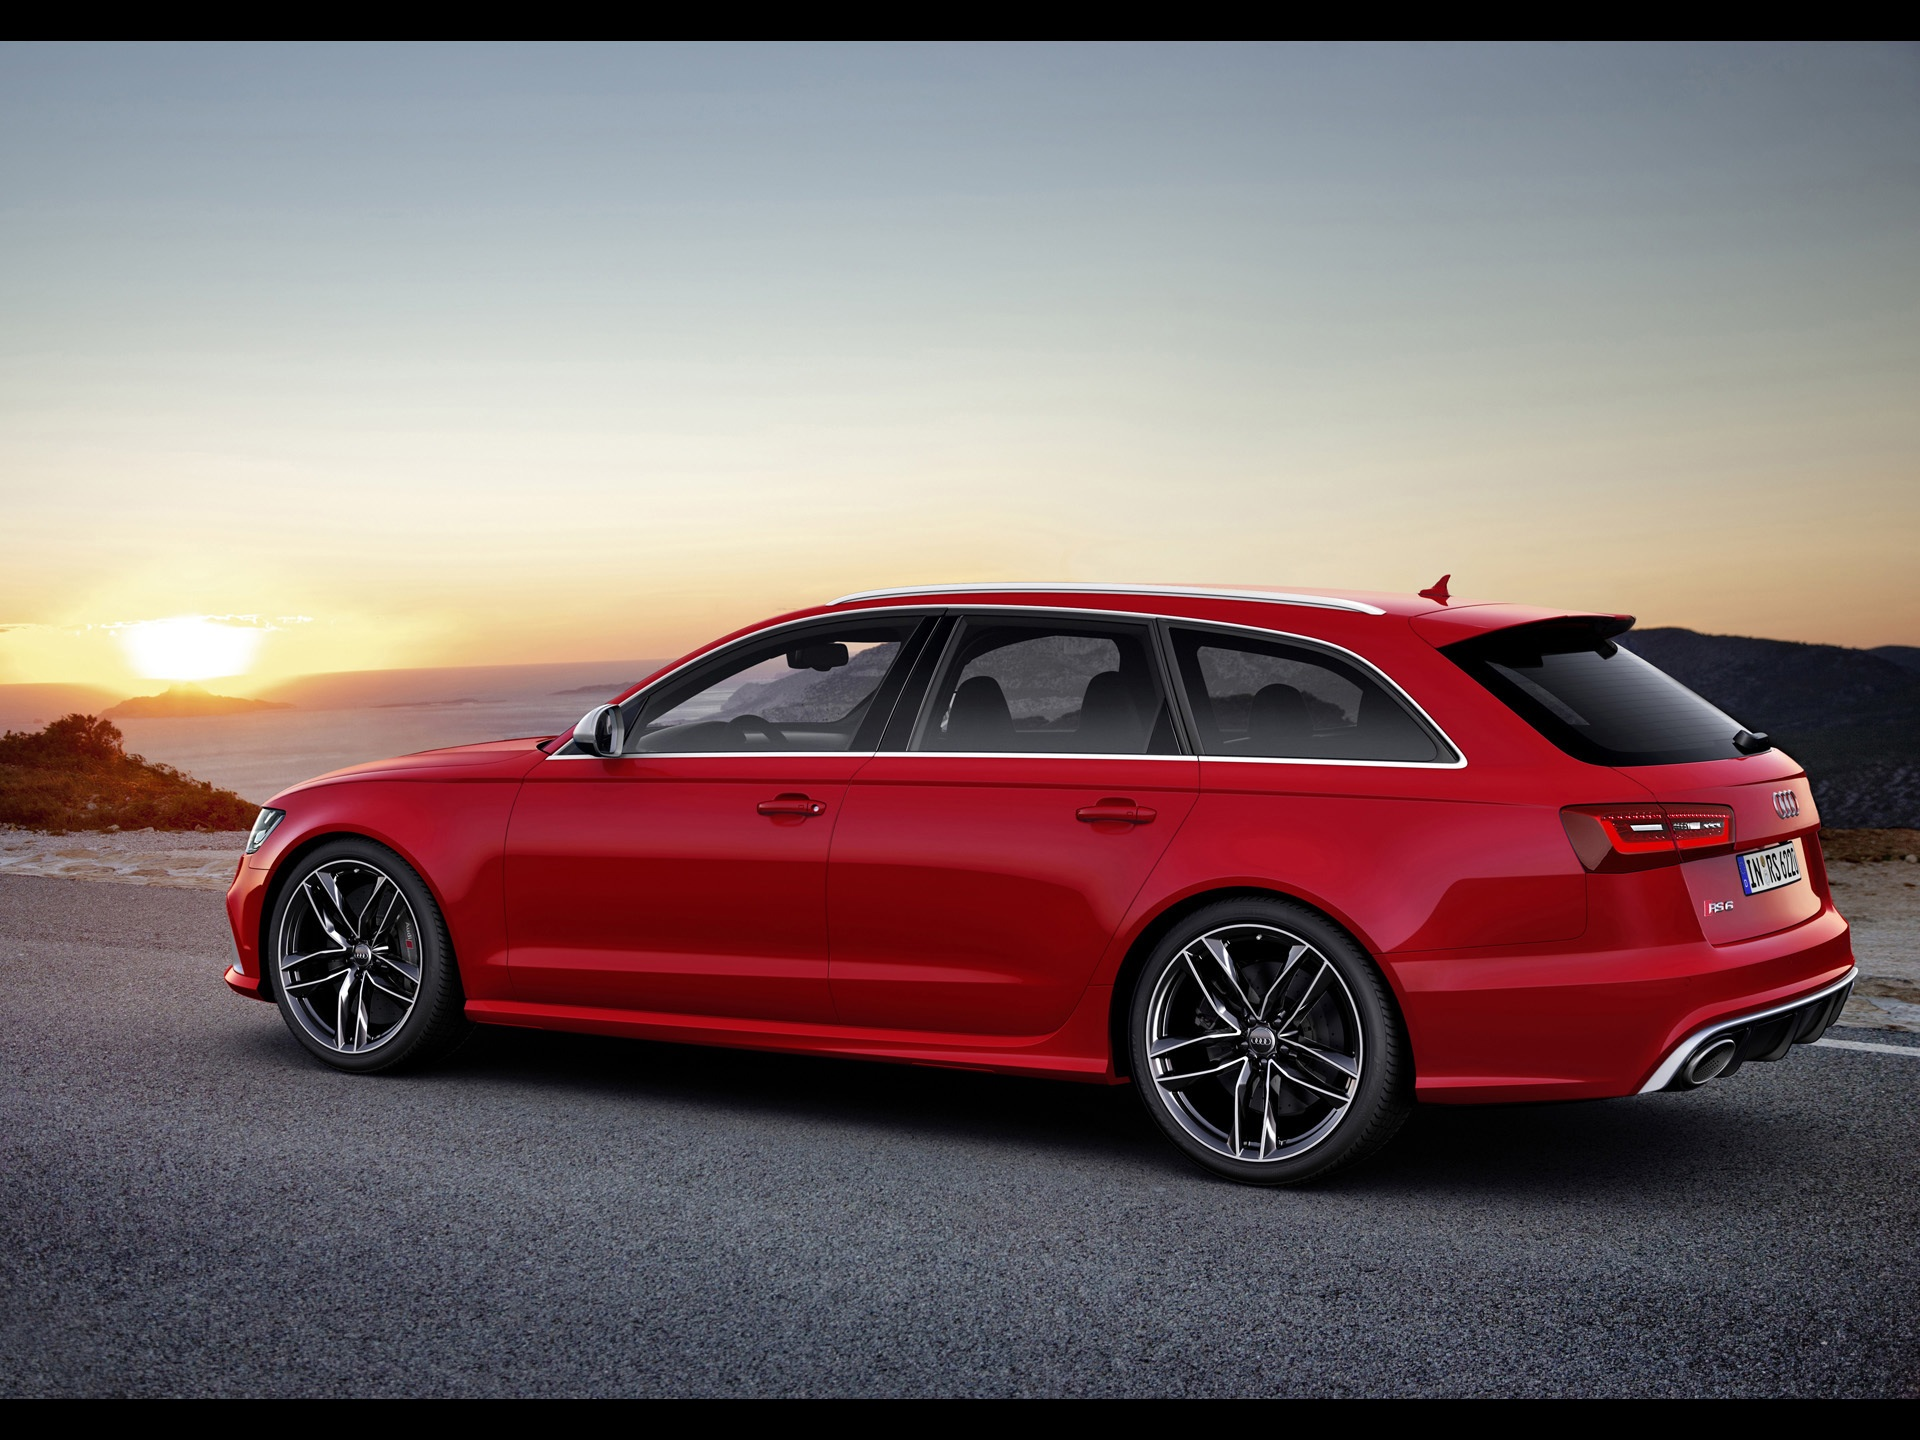 click to free download the wallpaper--World-Famous Cars Image of Audi RS6, the Red Car in Stop, the Rising Sun Faraway, an Amazing Scene 1920X1440 free wallpaper download